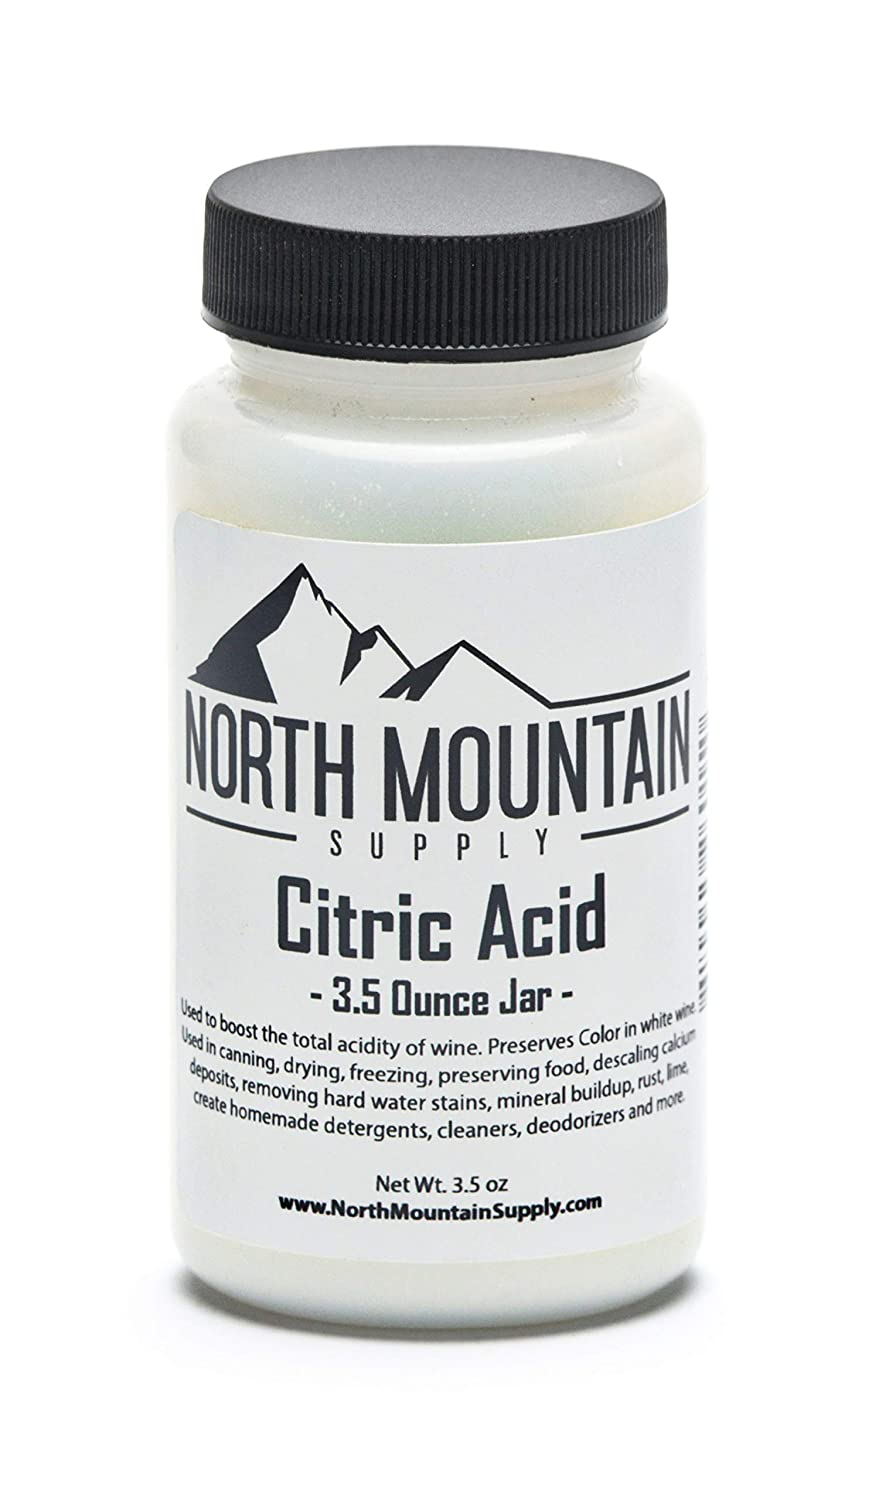 North Mountain Supply - CA-3.5oz Pure Food Grade Citric Acid - 3.5 Ounce Jar